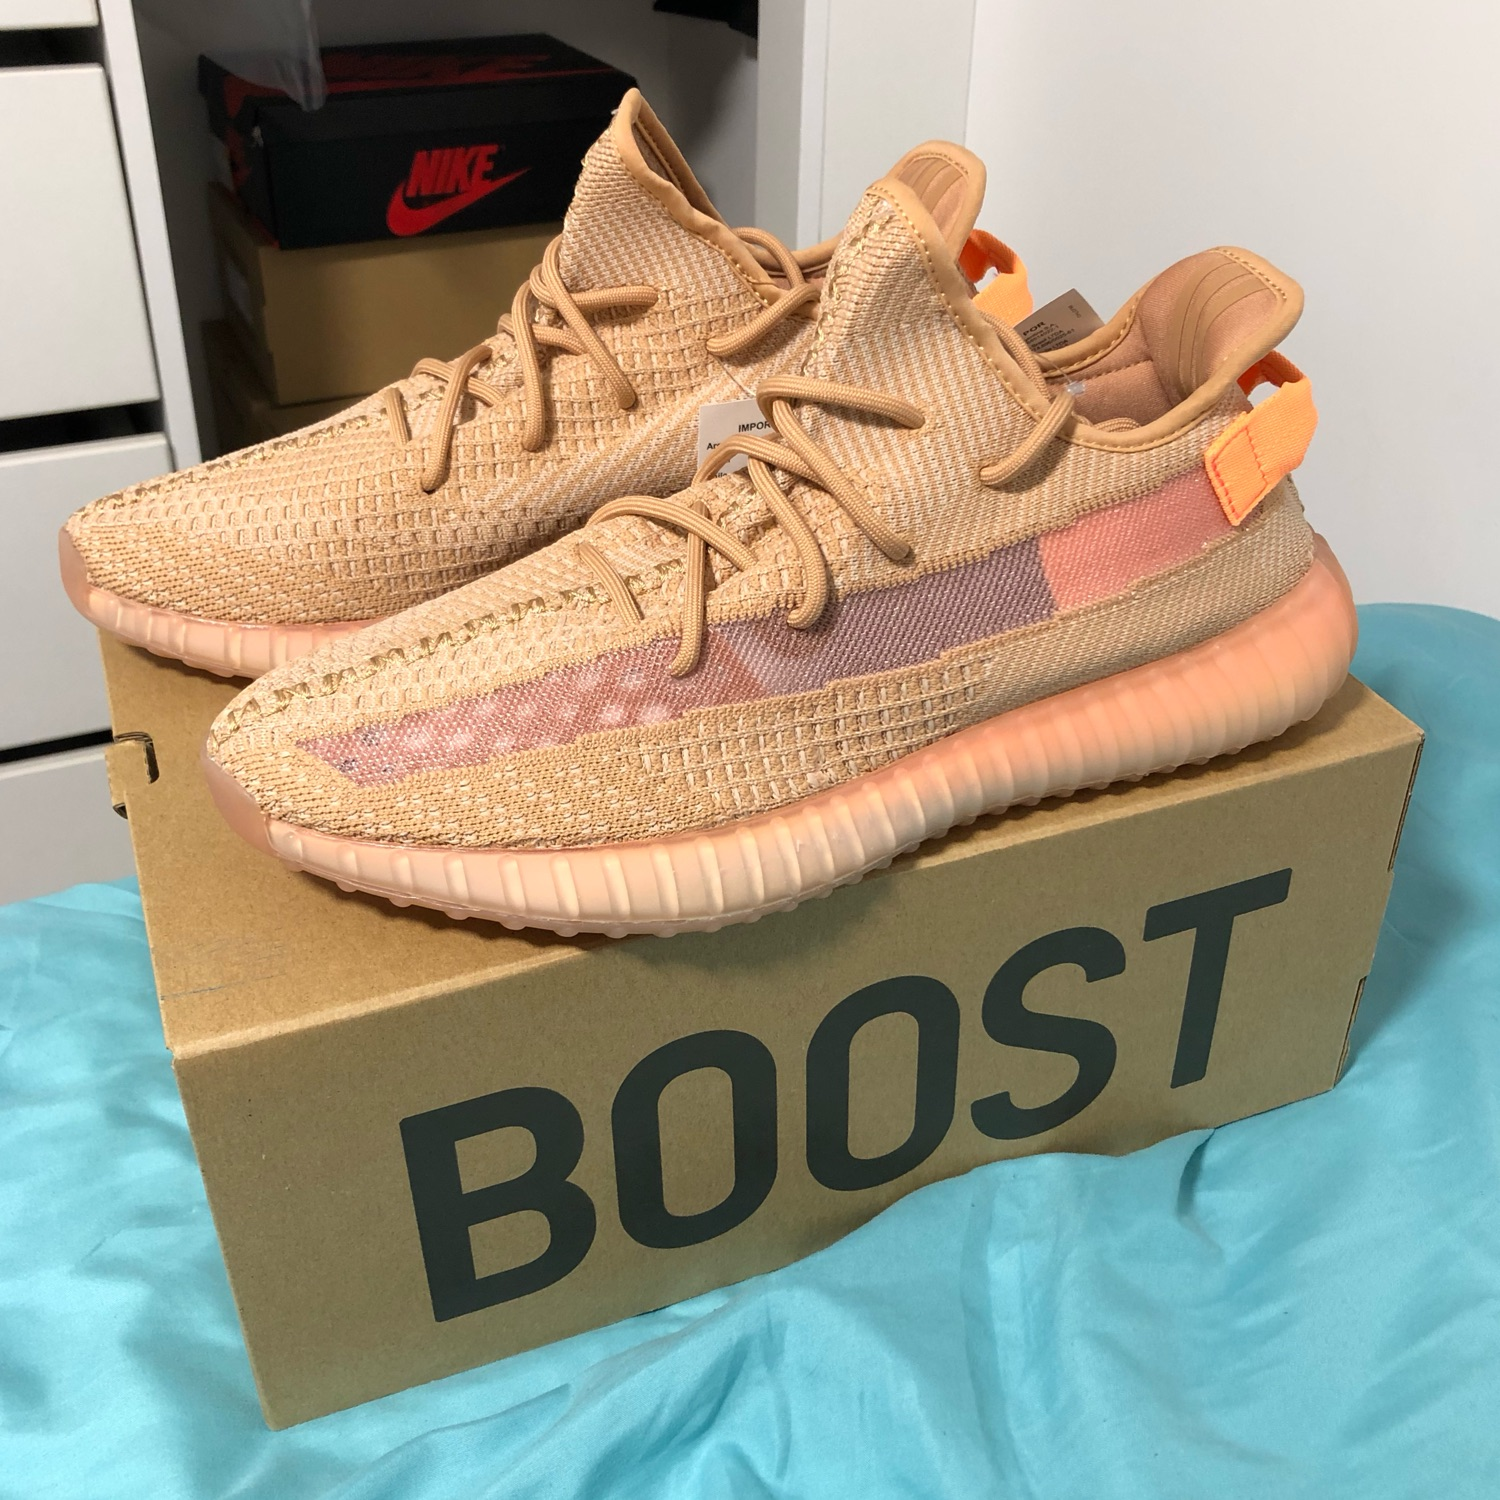 yeezy boost 350 v2 size 13 off 56